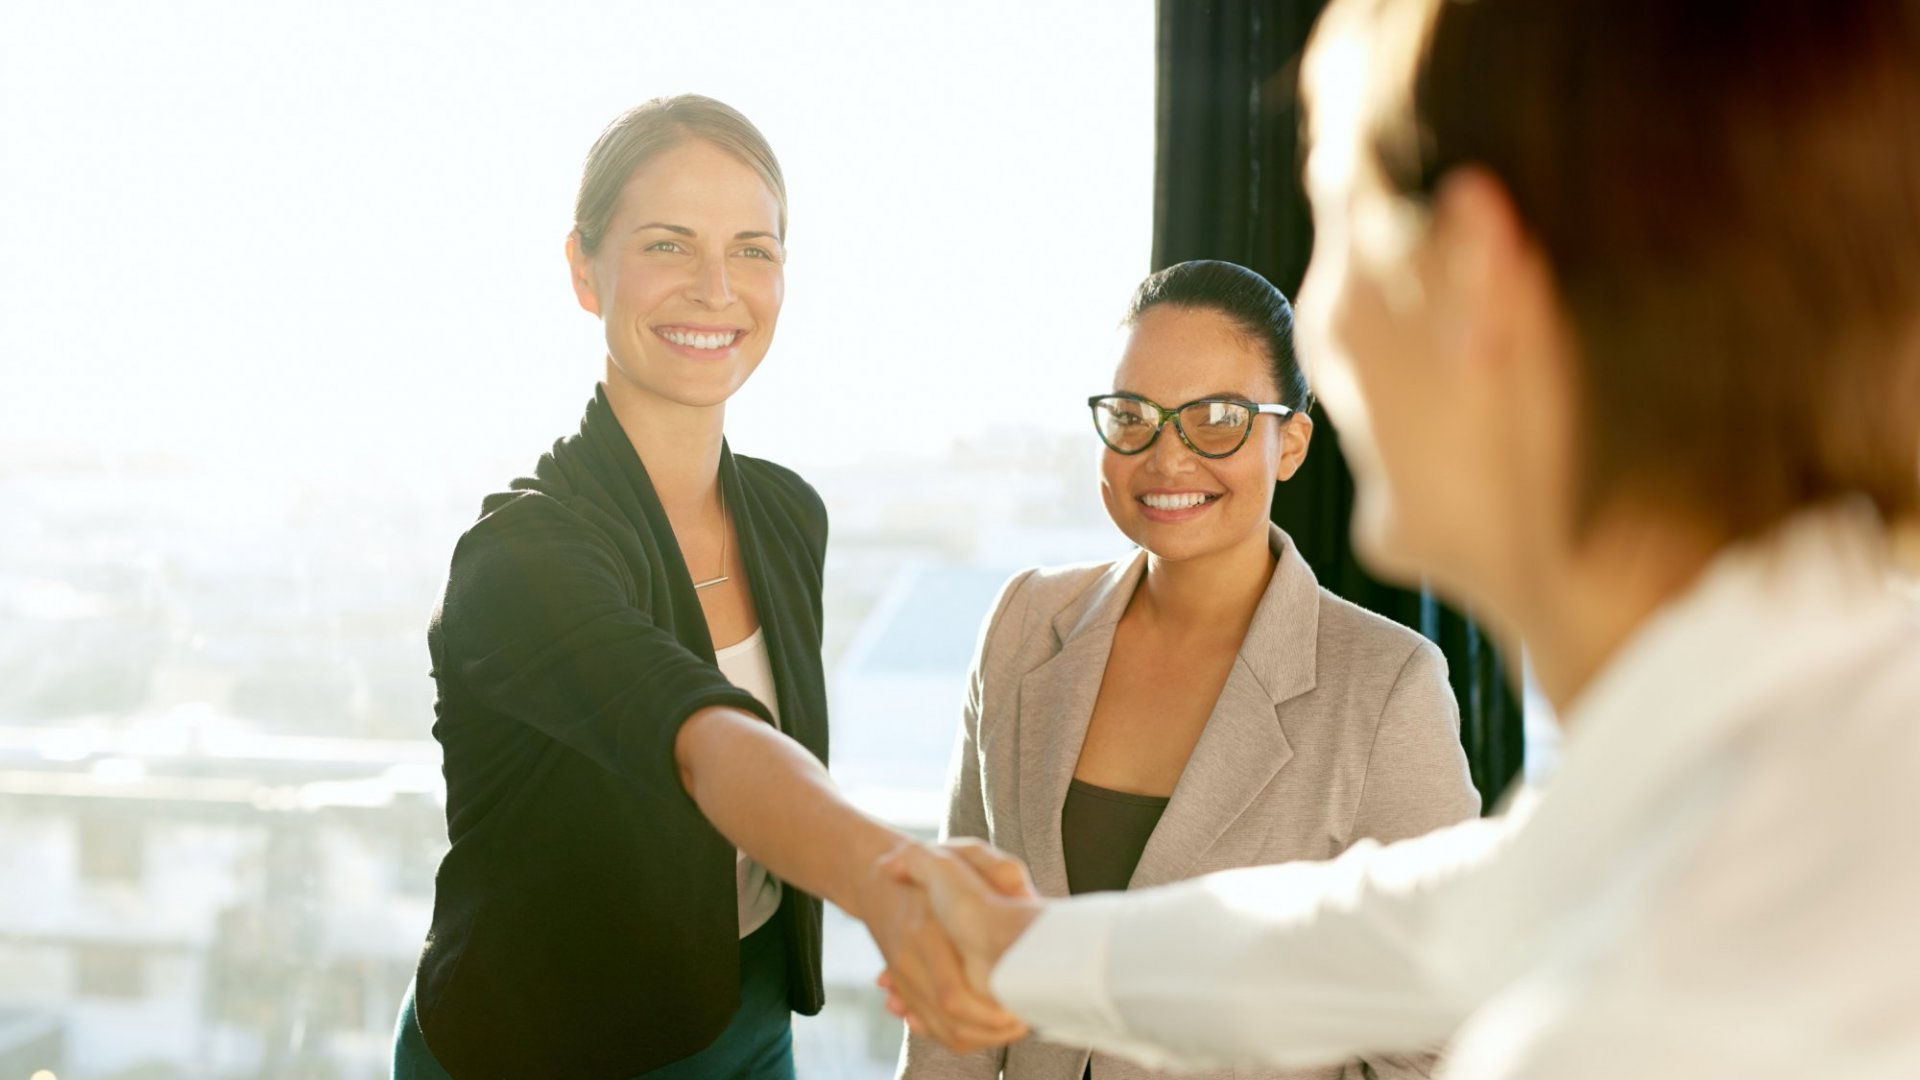 7 Tips To Be Successful As A New Marketing Manager